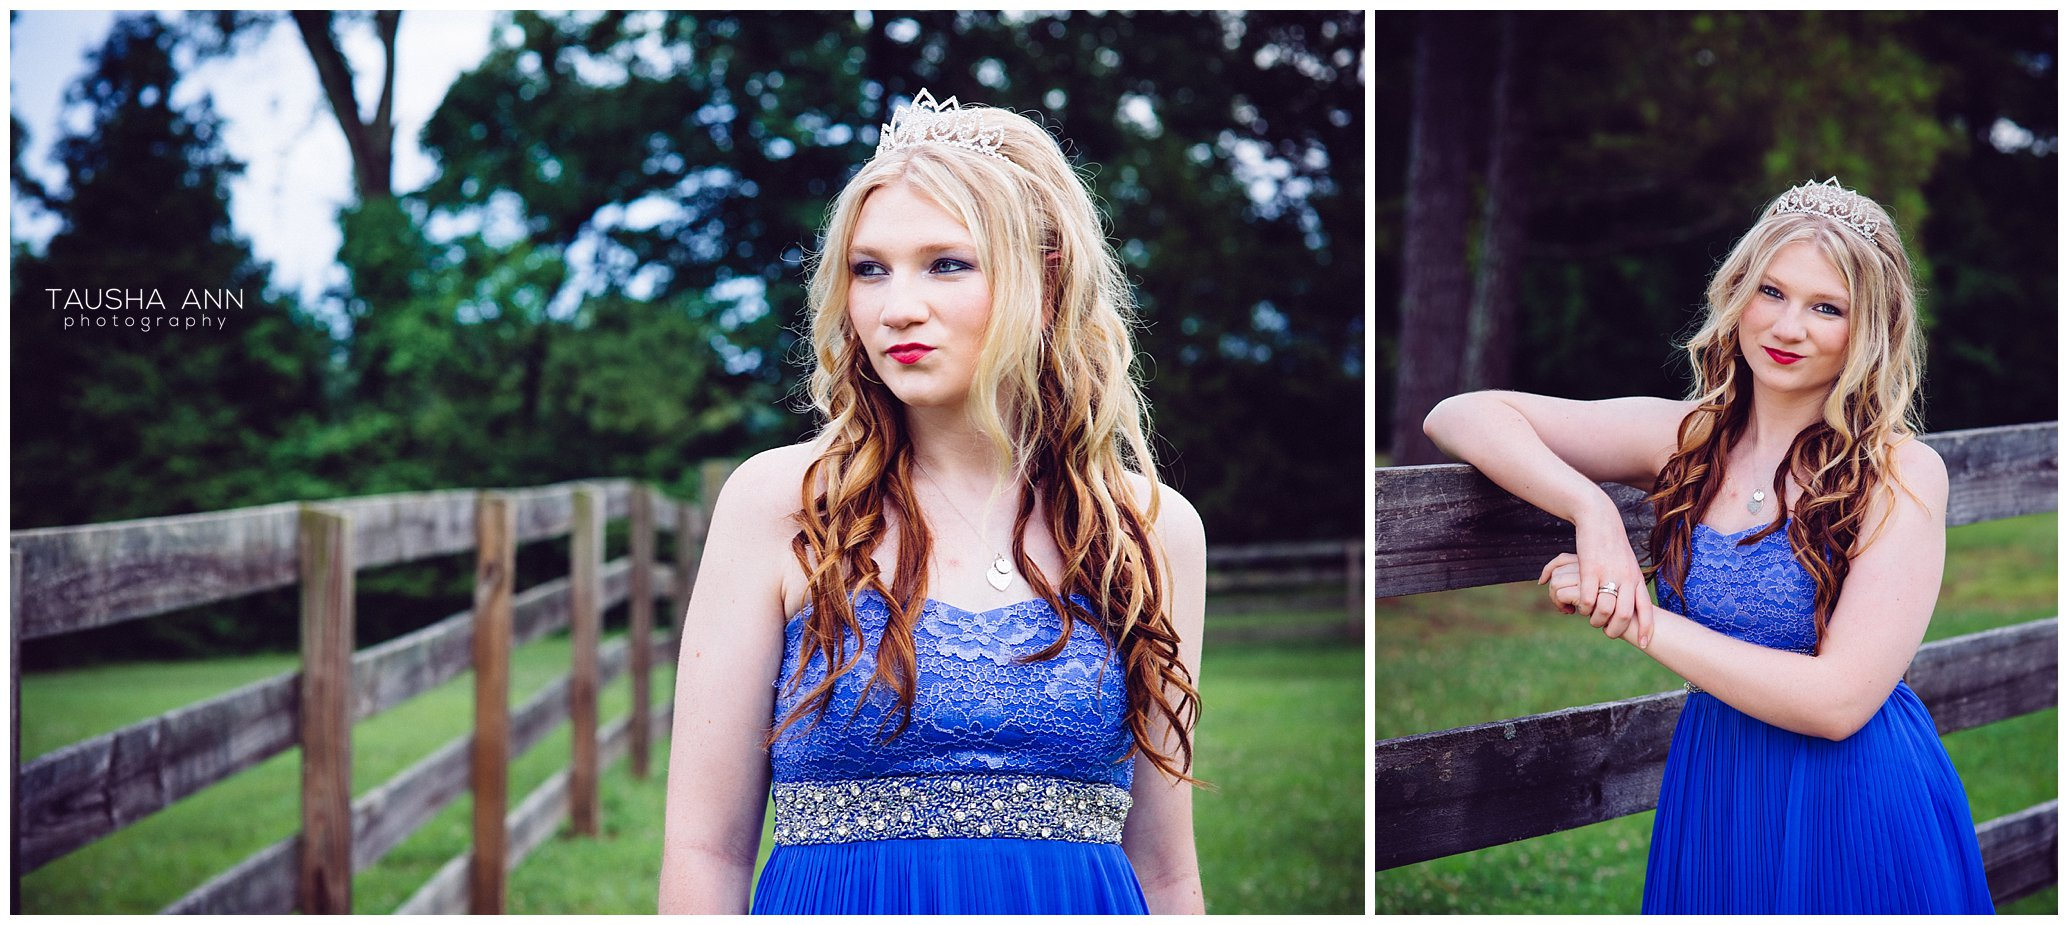 Sammie's_Sweet_16_Duck_Pond_Farm_Mt_Juliet_Tausha_Ann_Photography_Model_Nashville_Franklin_Spinning_Blue_Dress_Tiara_Senior